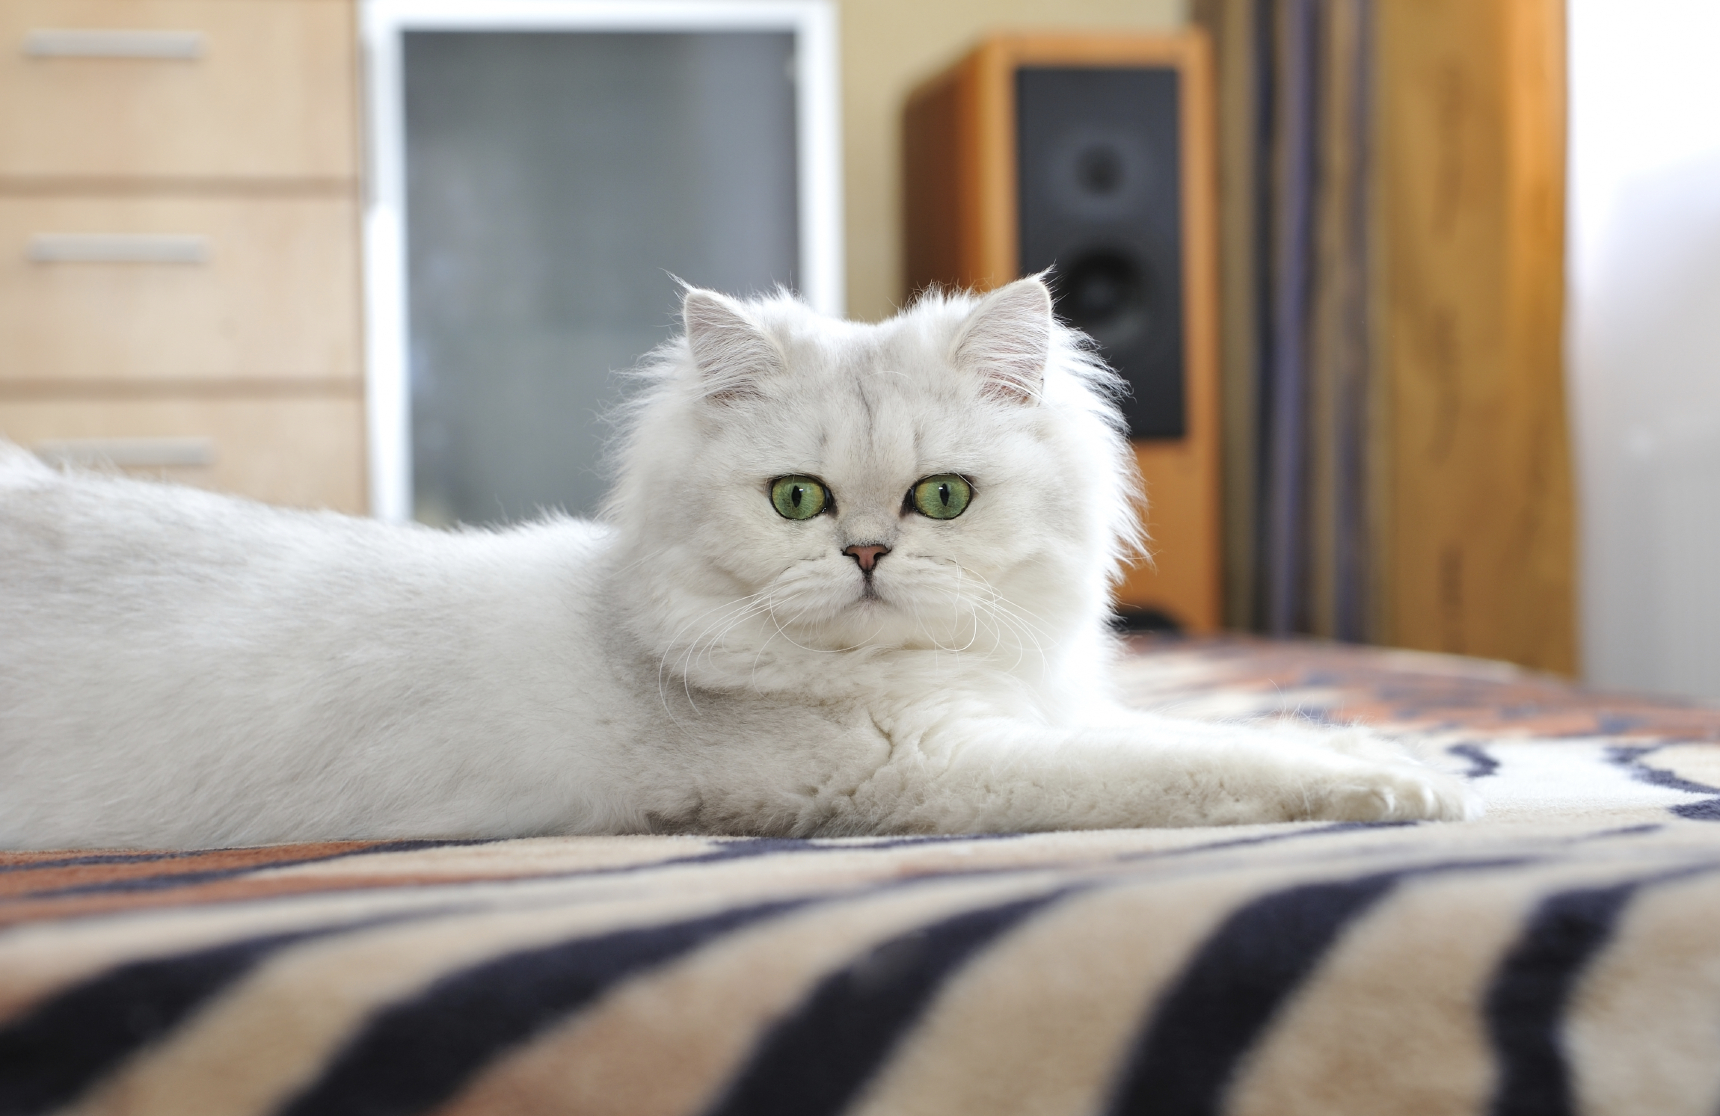 White cat with green eyes lying on the couch.